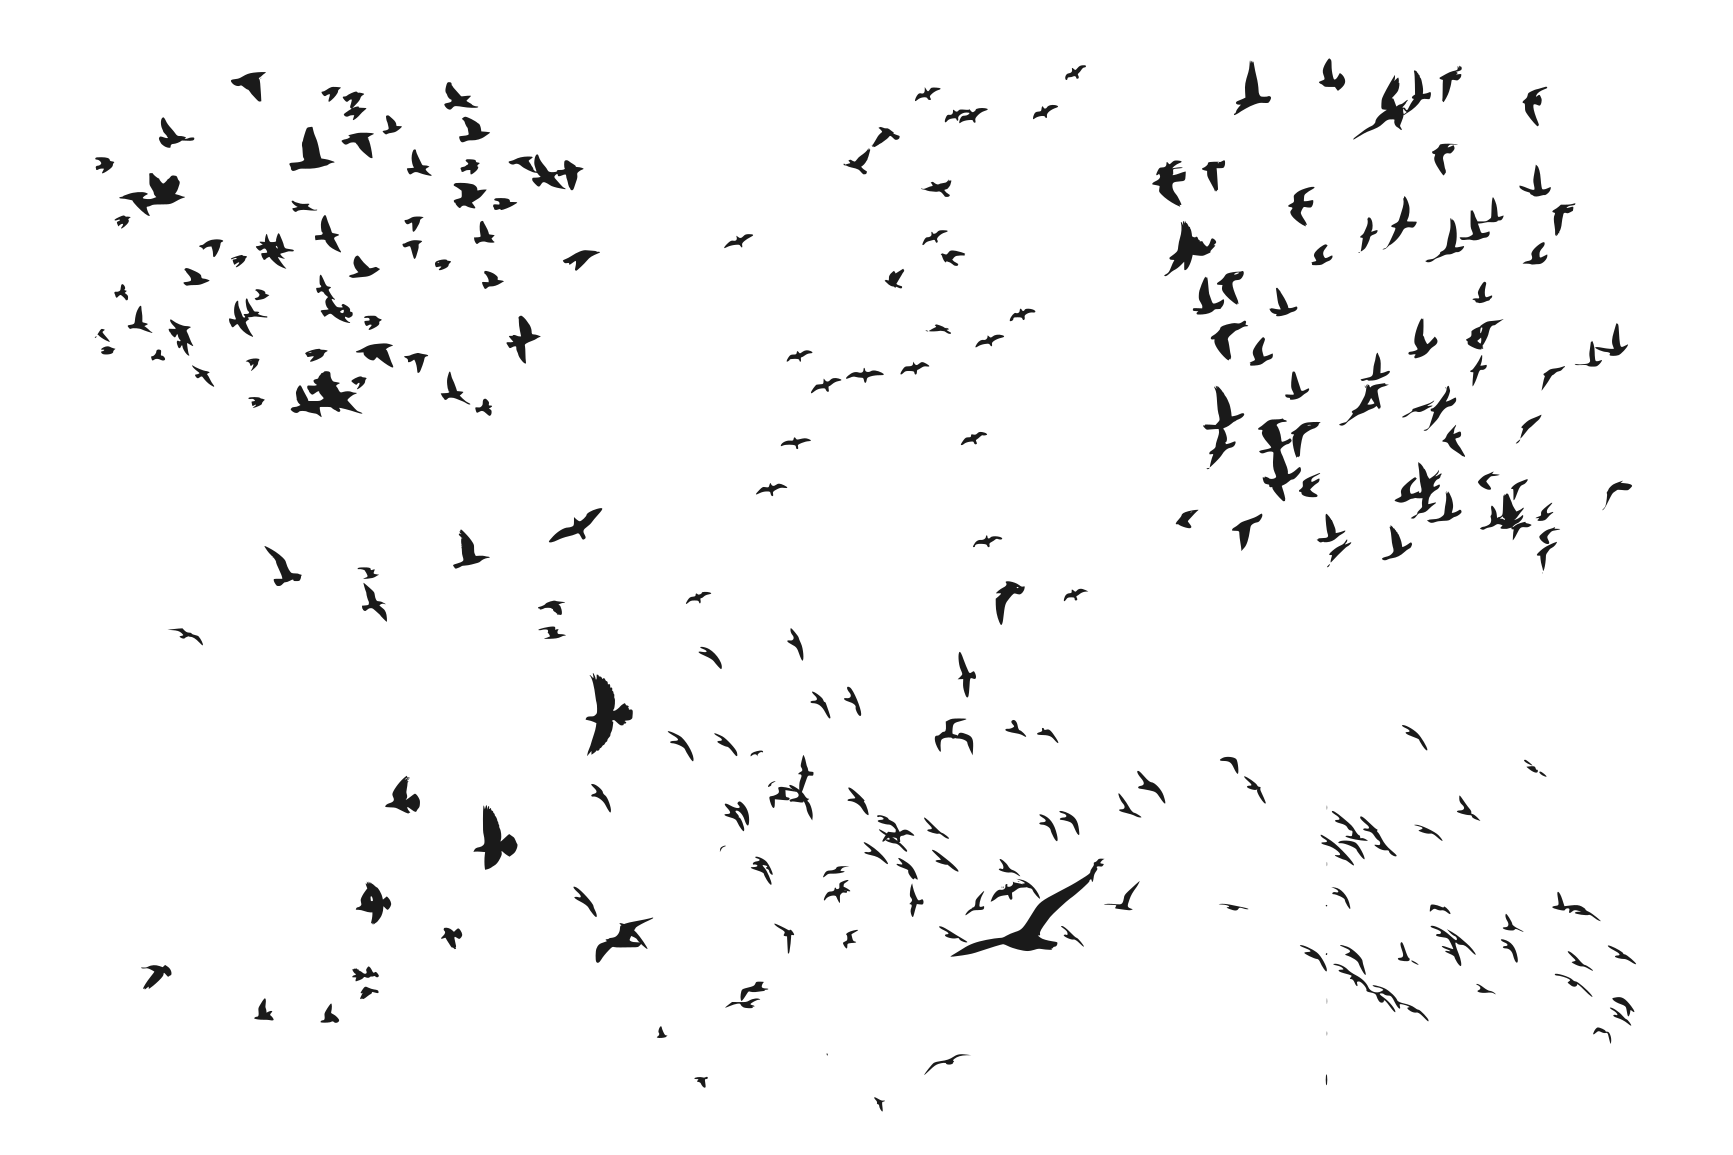 8-flock-of-birds-silhouette-cover.png